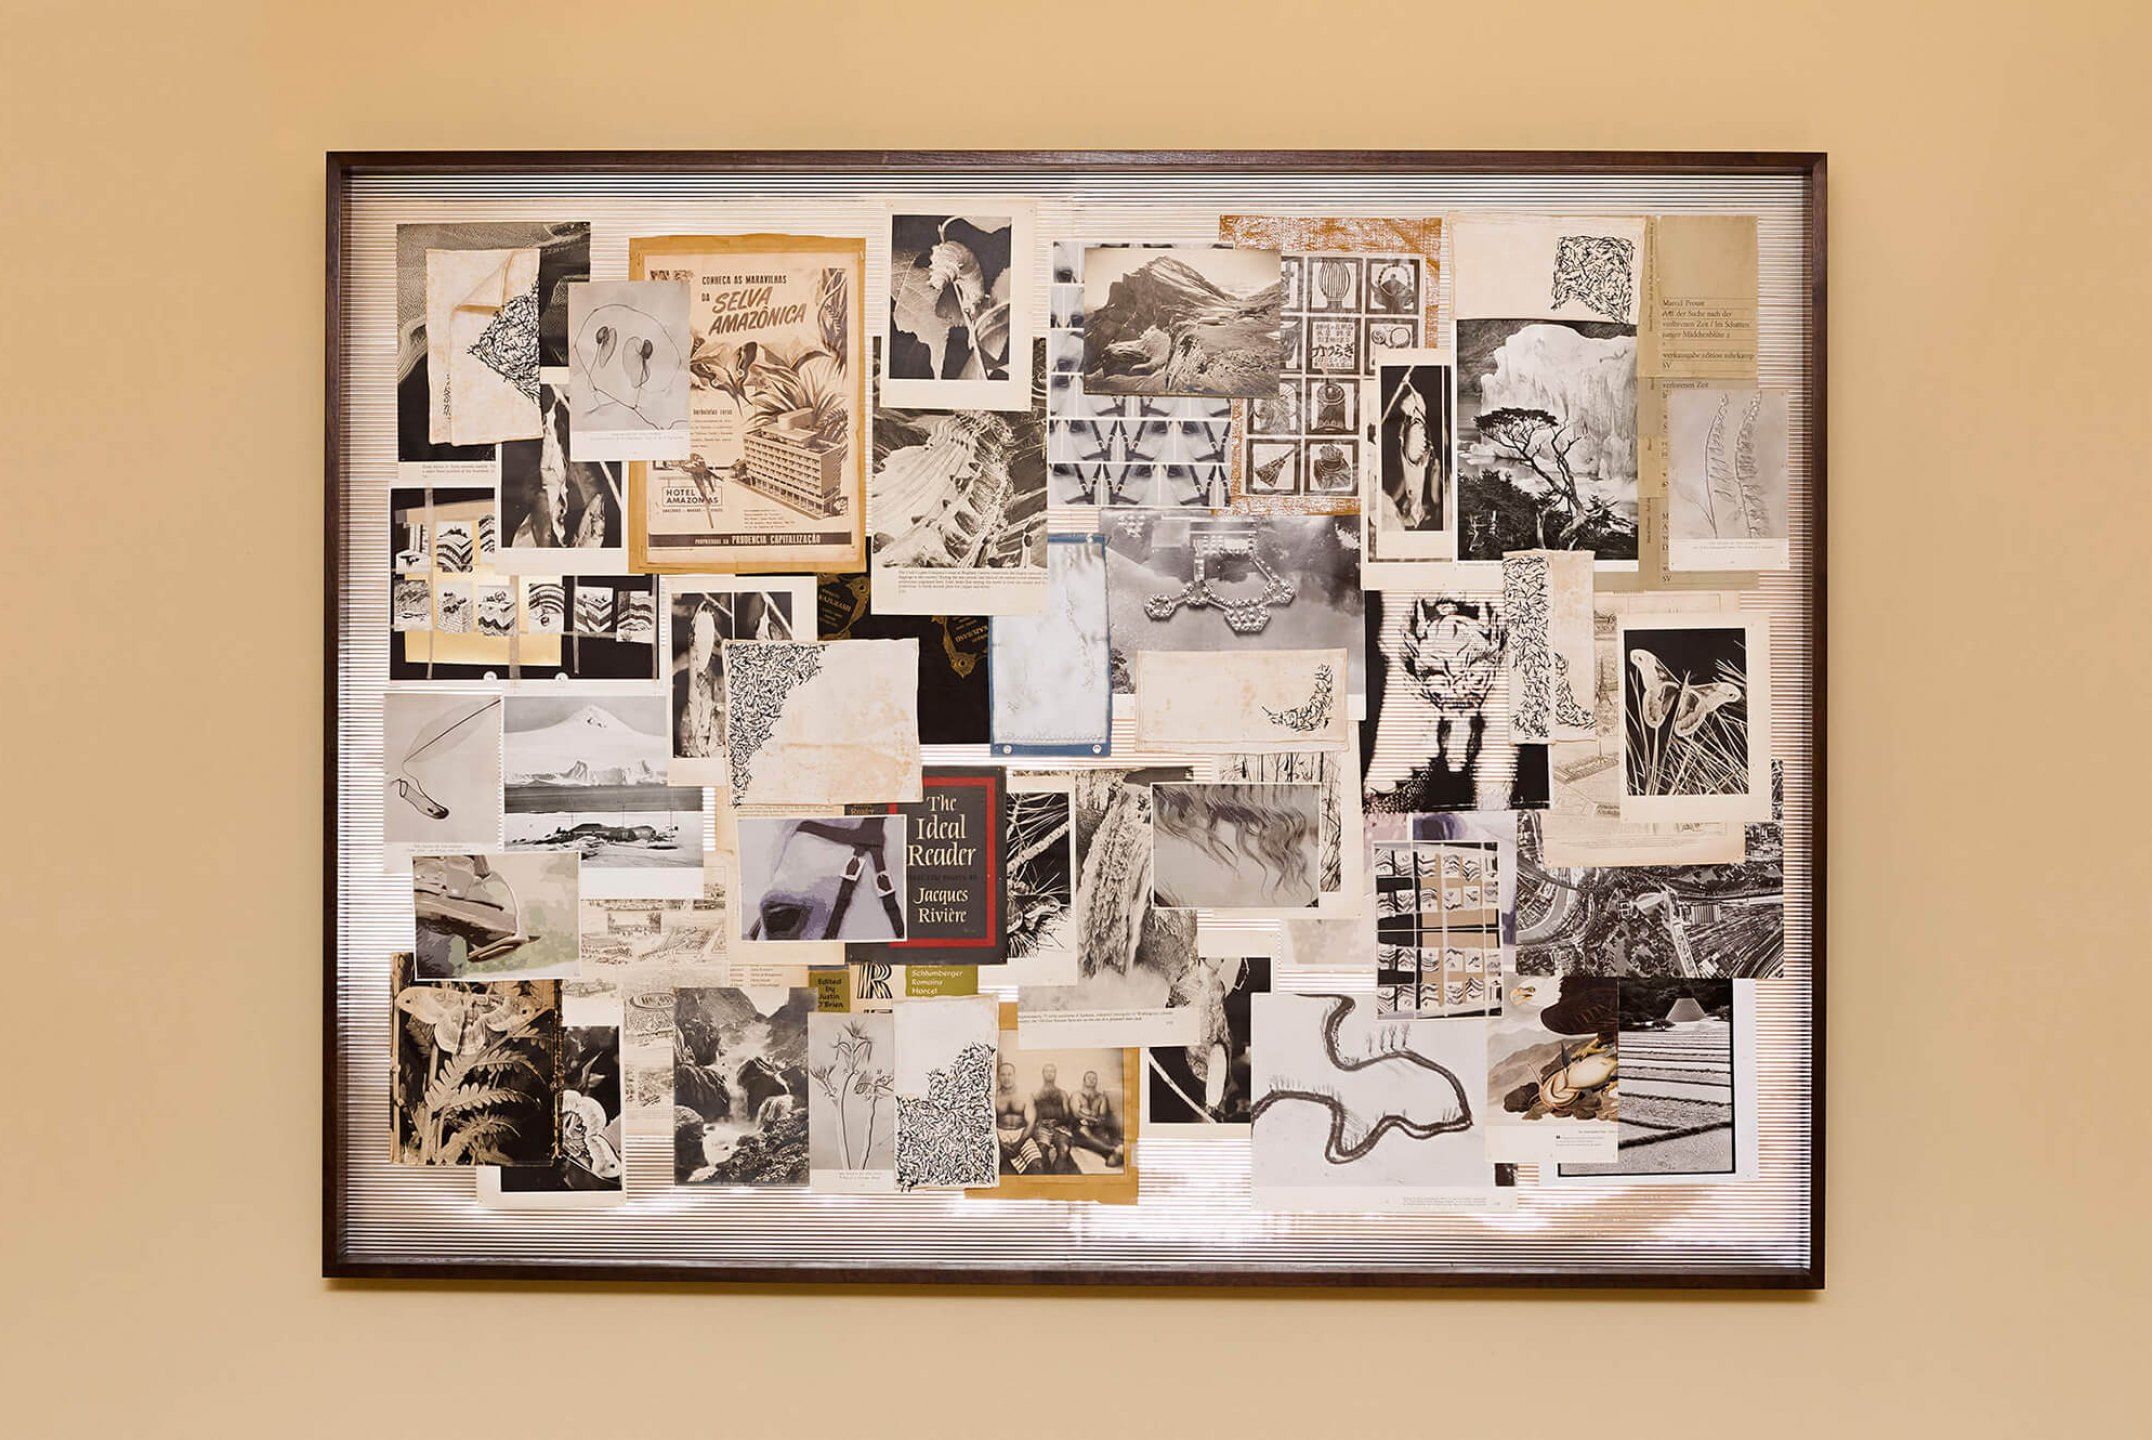 f.marquespeteado,<em>Storyboard Jonas</em>, 2002/2014, print on paper and fabric, graphite on paper, photographs, newspaper and files on metallized paper framed, 120 × 162 × 8 cm - Mendes Wood DM